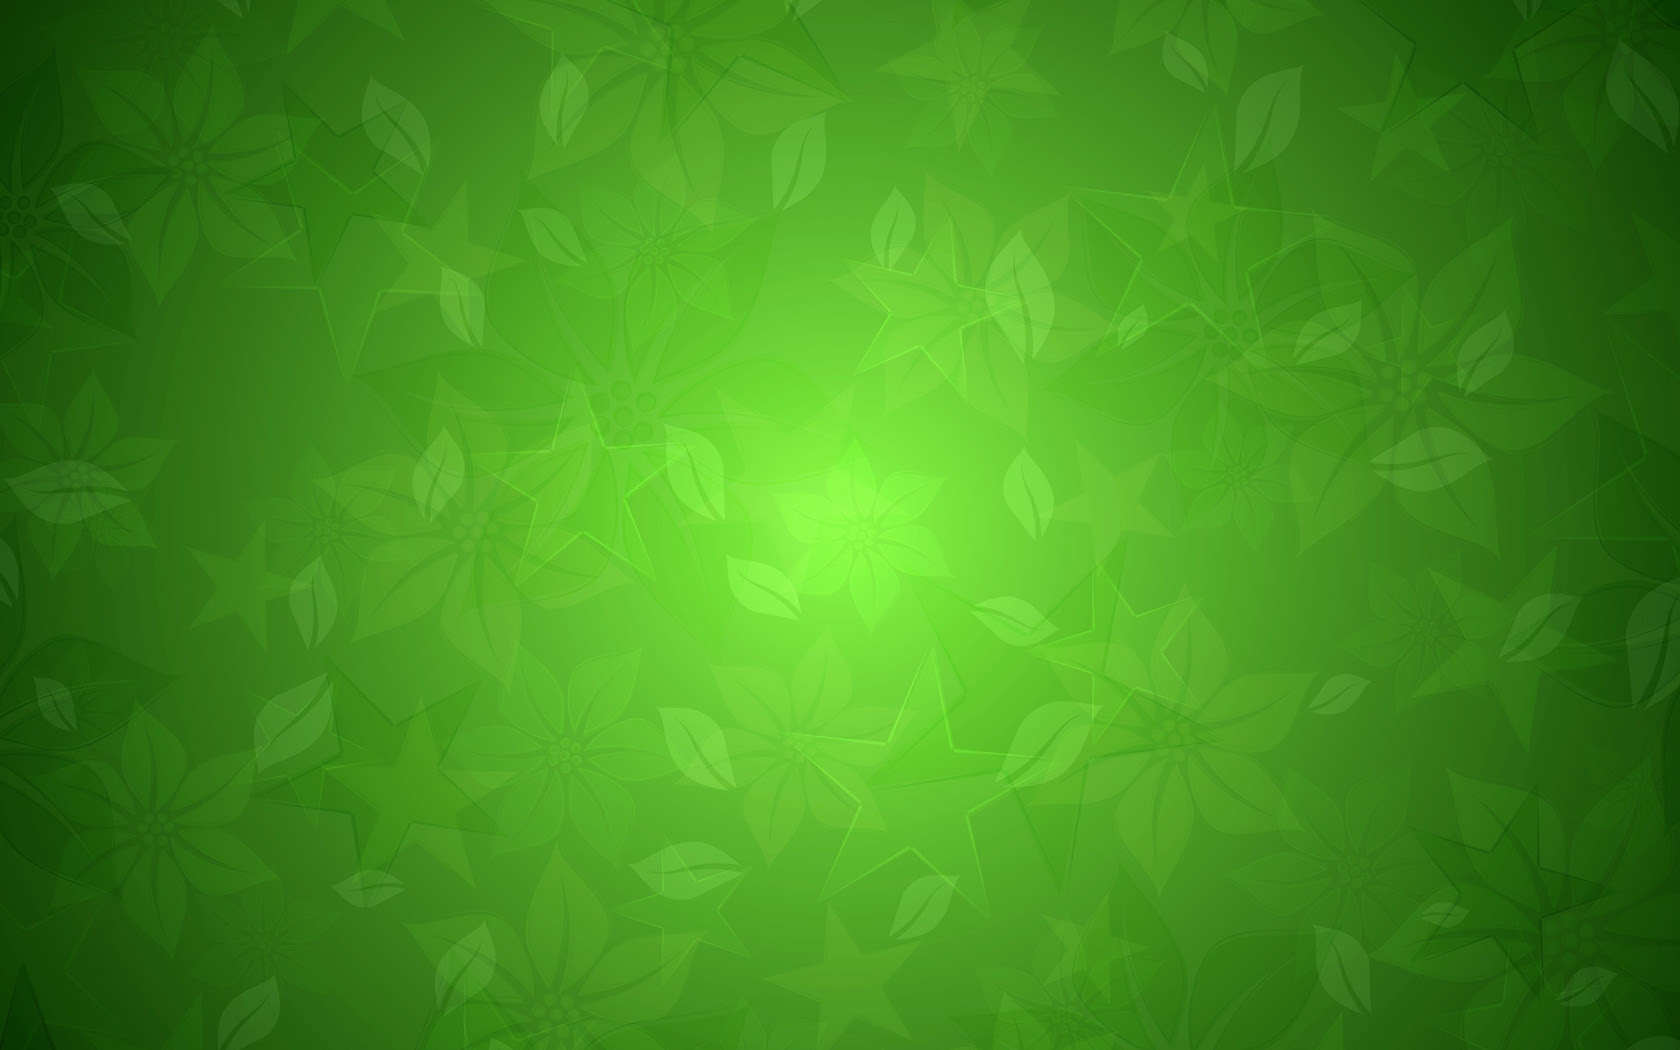 Free Download 44 HD Green Wallpapers for Windows and Mac Systems